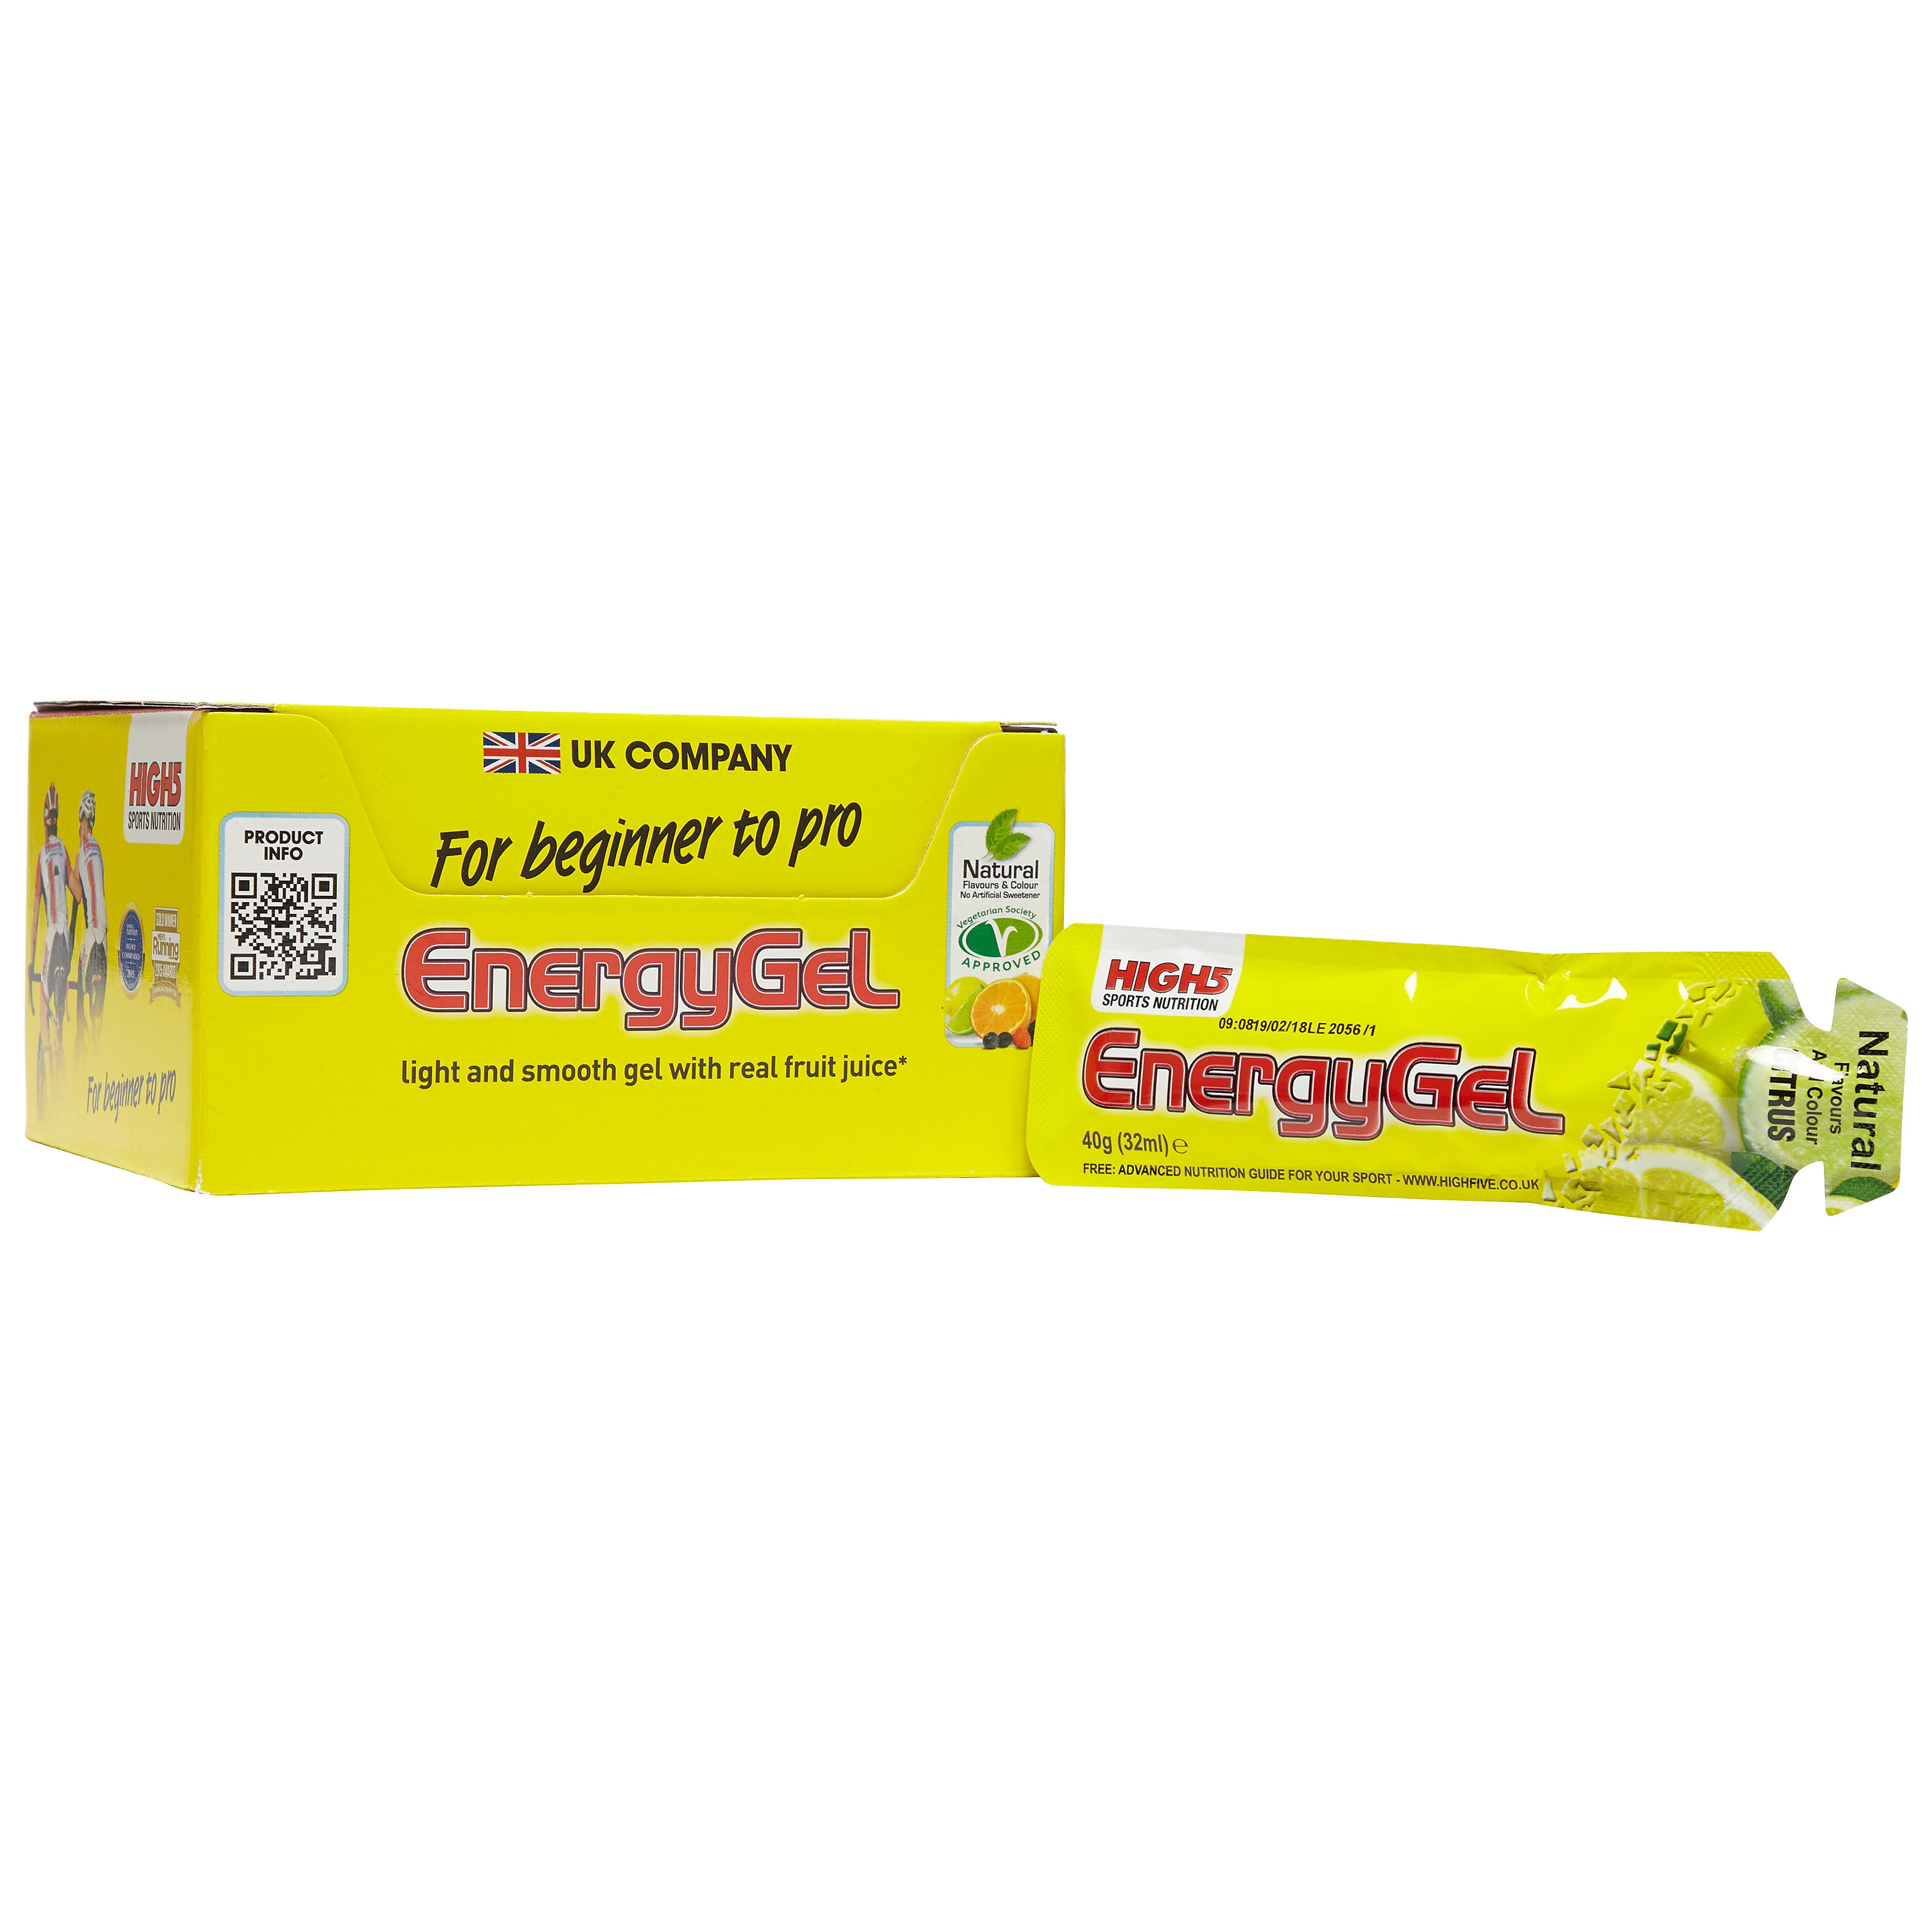 High 5 Energy Gel (20 Pack)- Citrus Blast